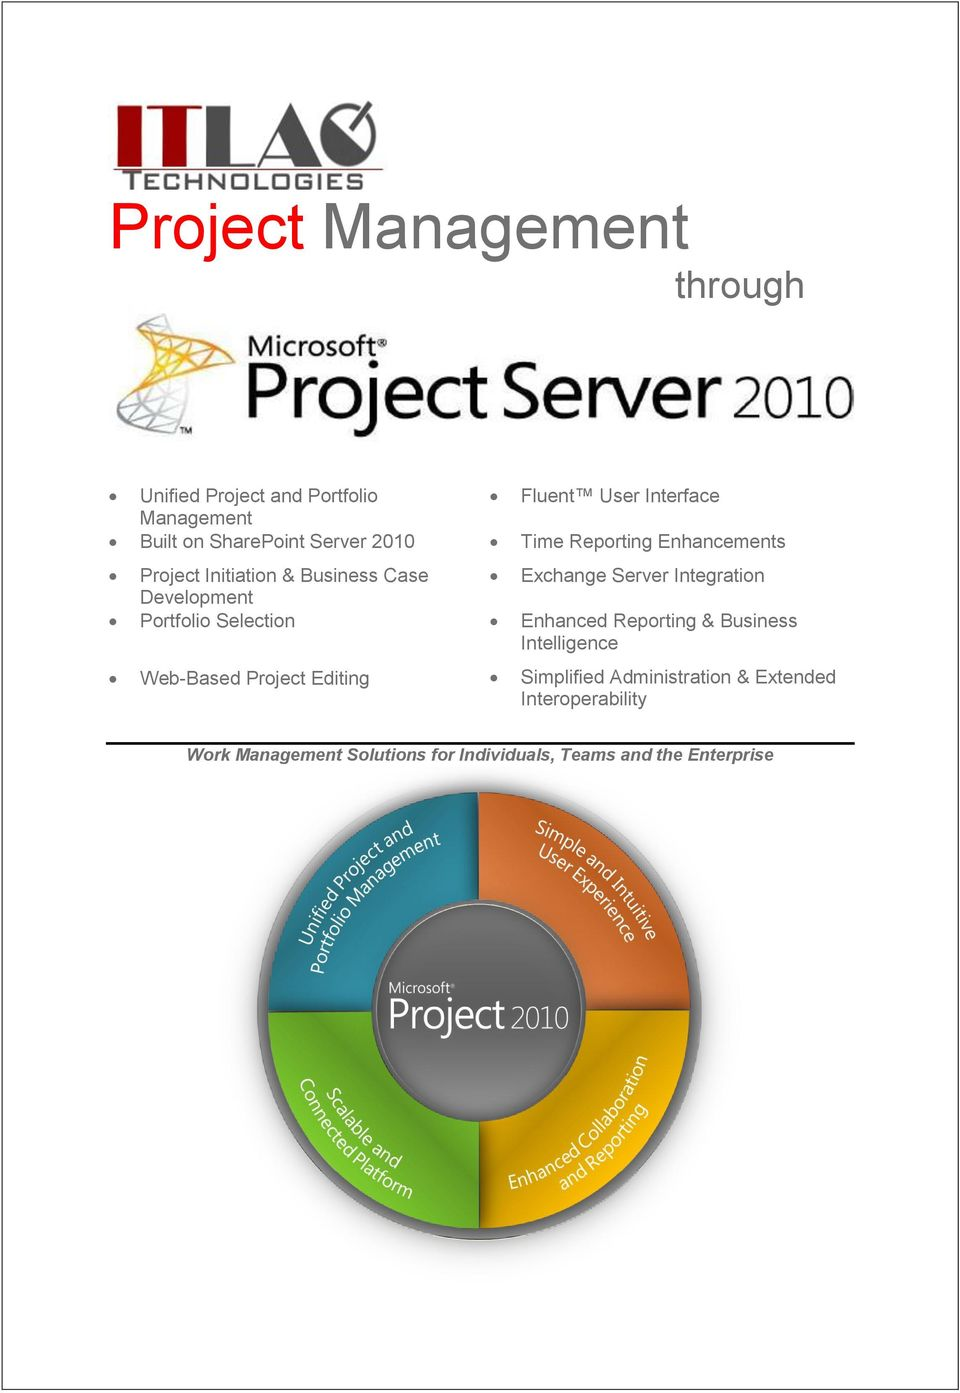 Integration Development Portfolio Selection Enhanced Reporting & Business Intelligence Web-Based Project